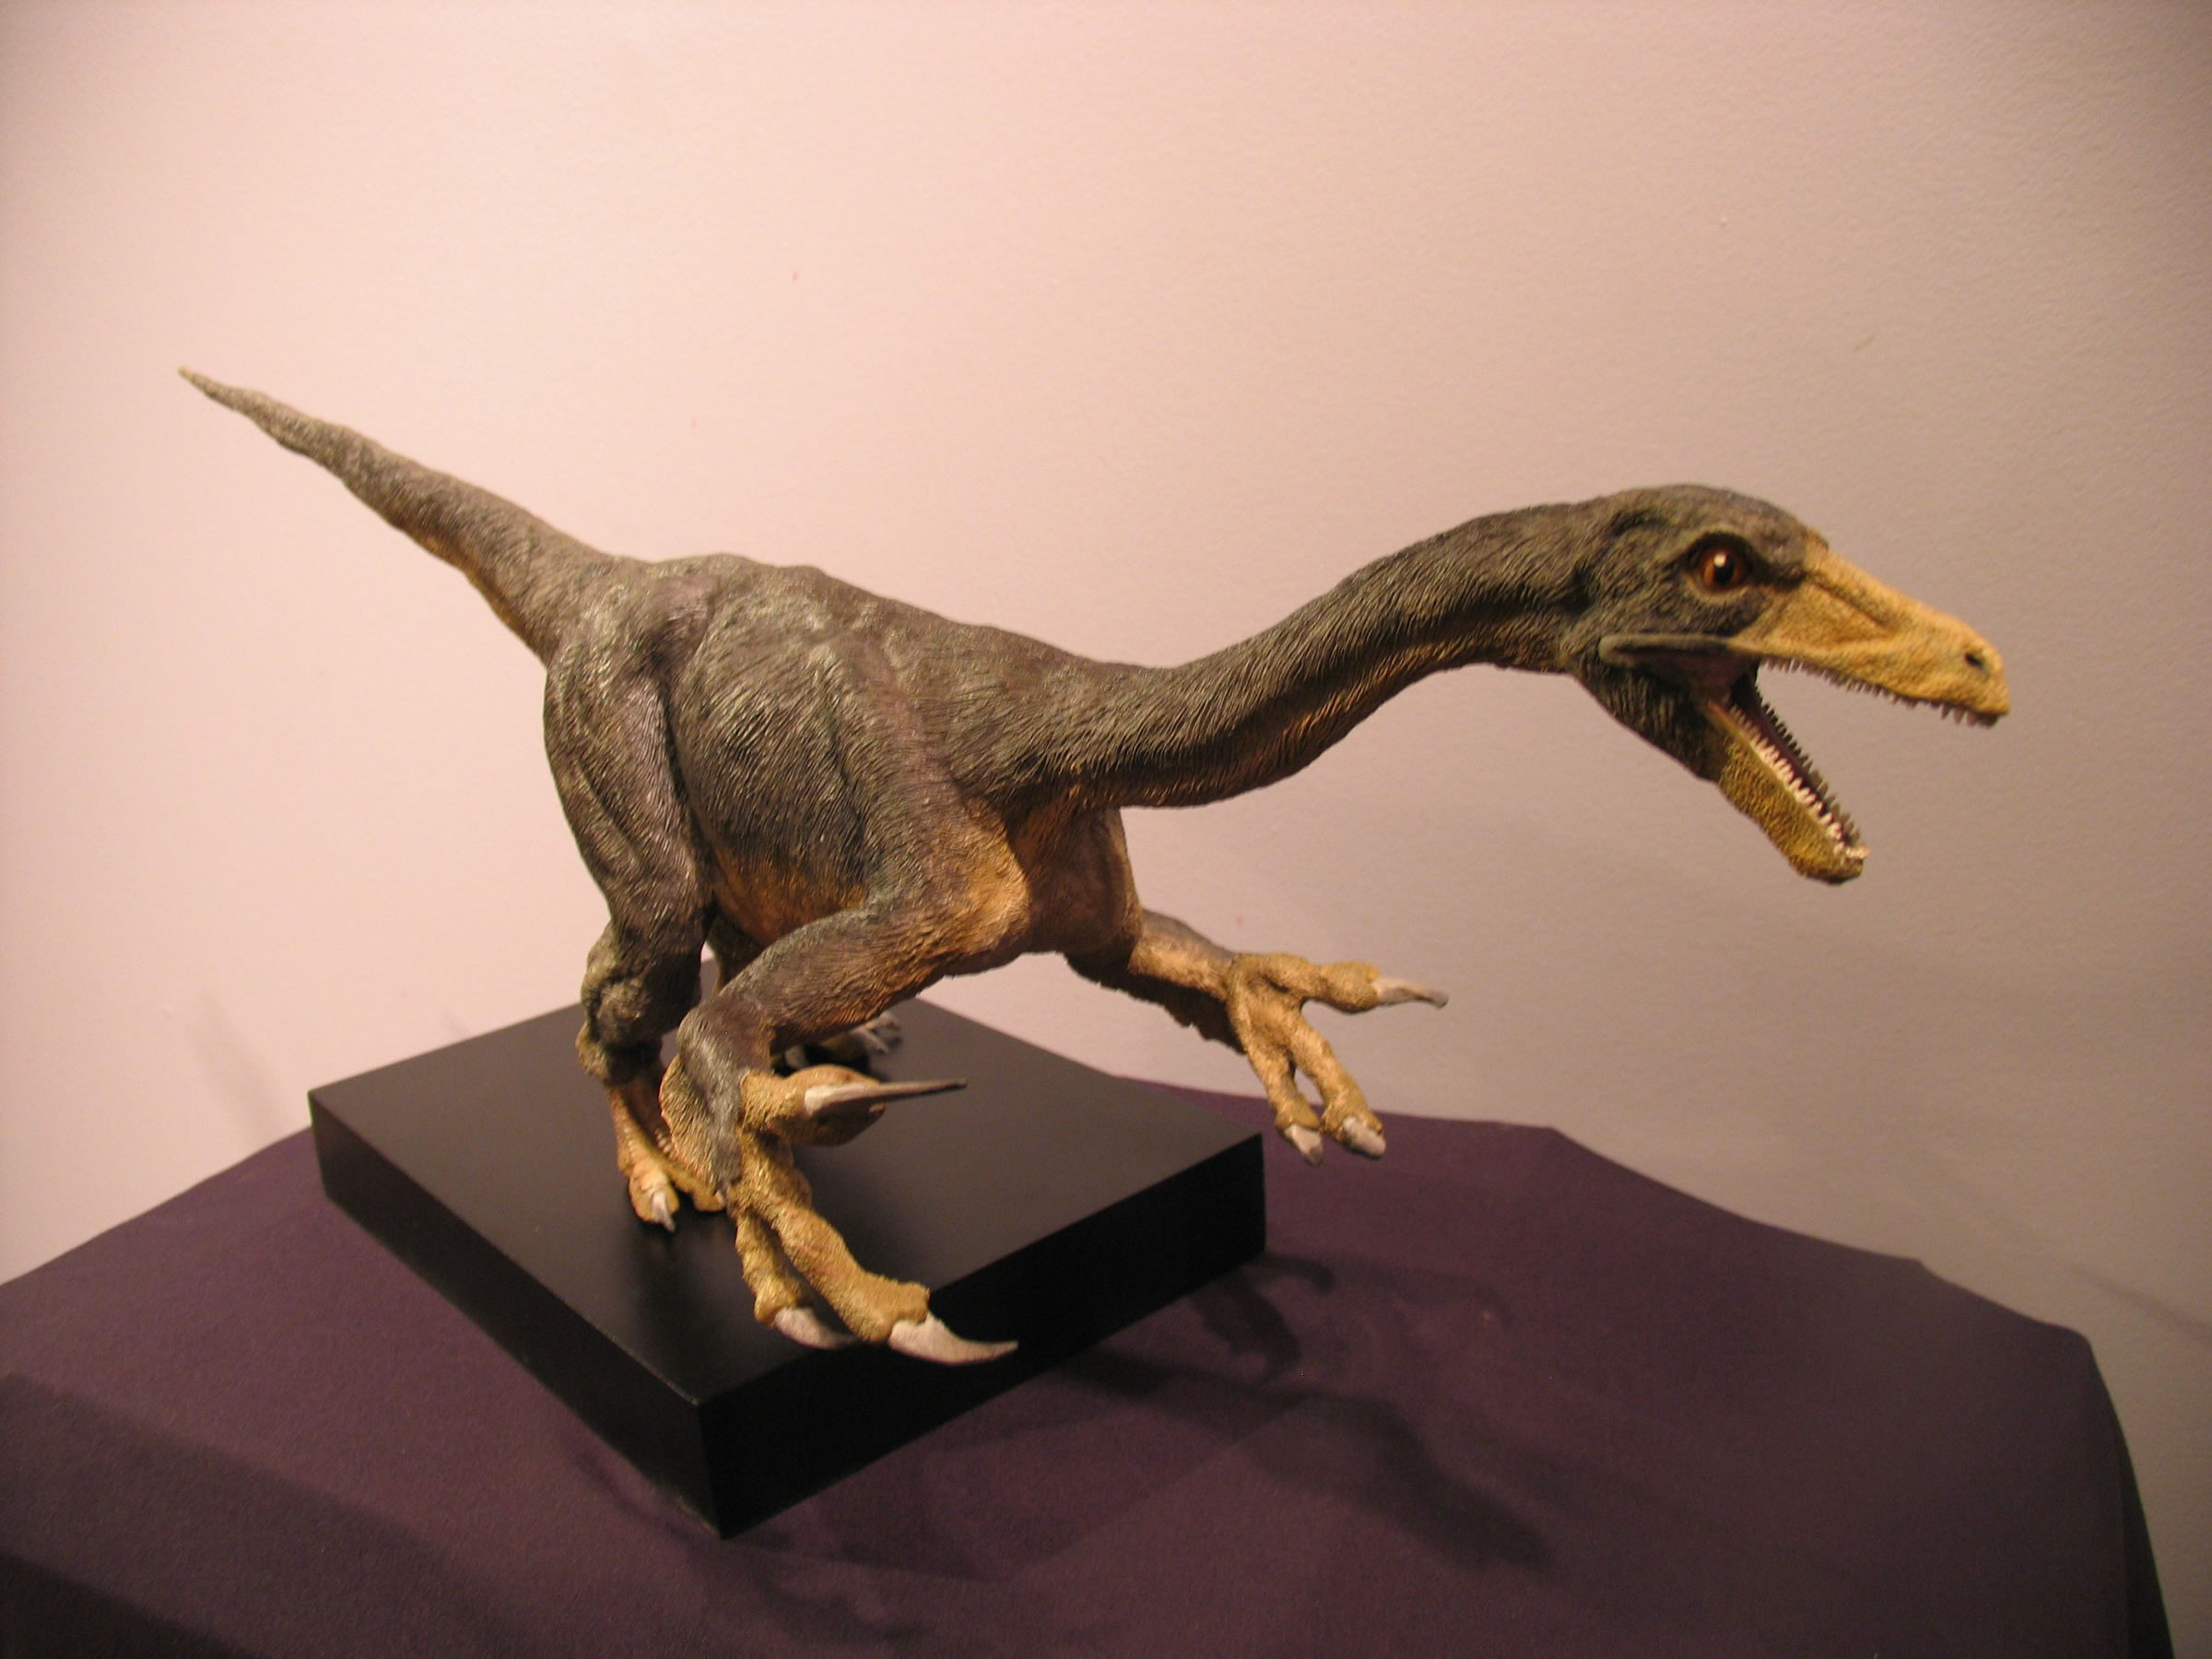 Sculpture of the previously unknown dinosaur species Falcarius utahensis, which was dicovered by scientists from the Utah Geological Survey and the Utah Museum of Natural History at the University of Utah. The sculpture was created by artist John Moore, with casting and painting by PaleoForms LLC in Provo, Utah.